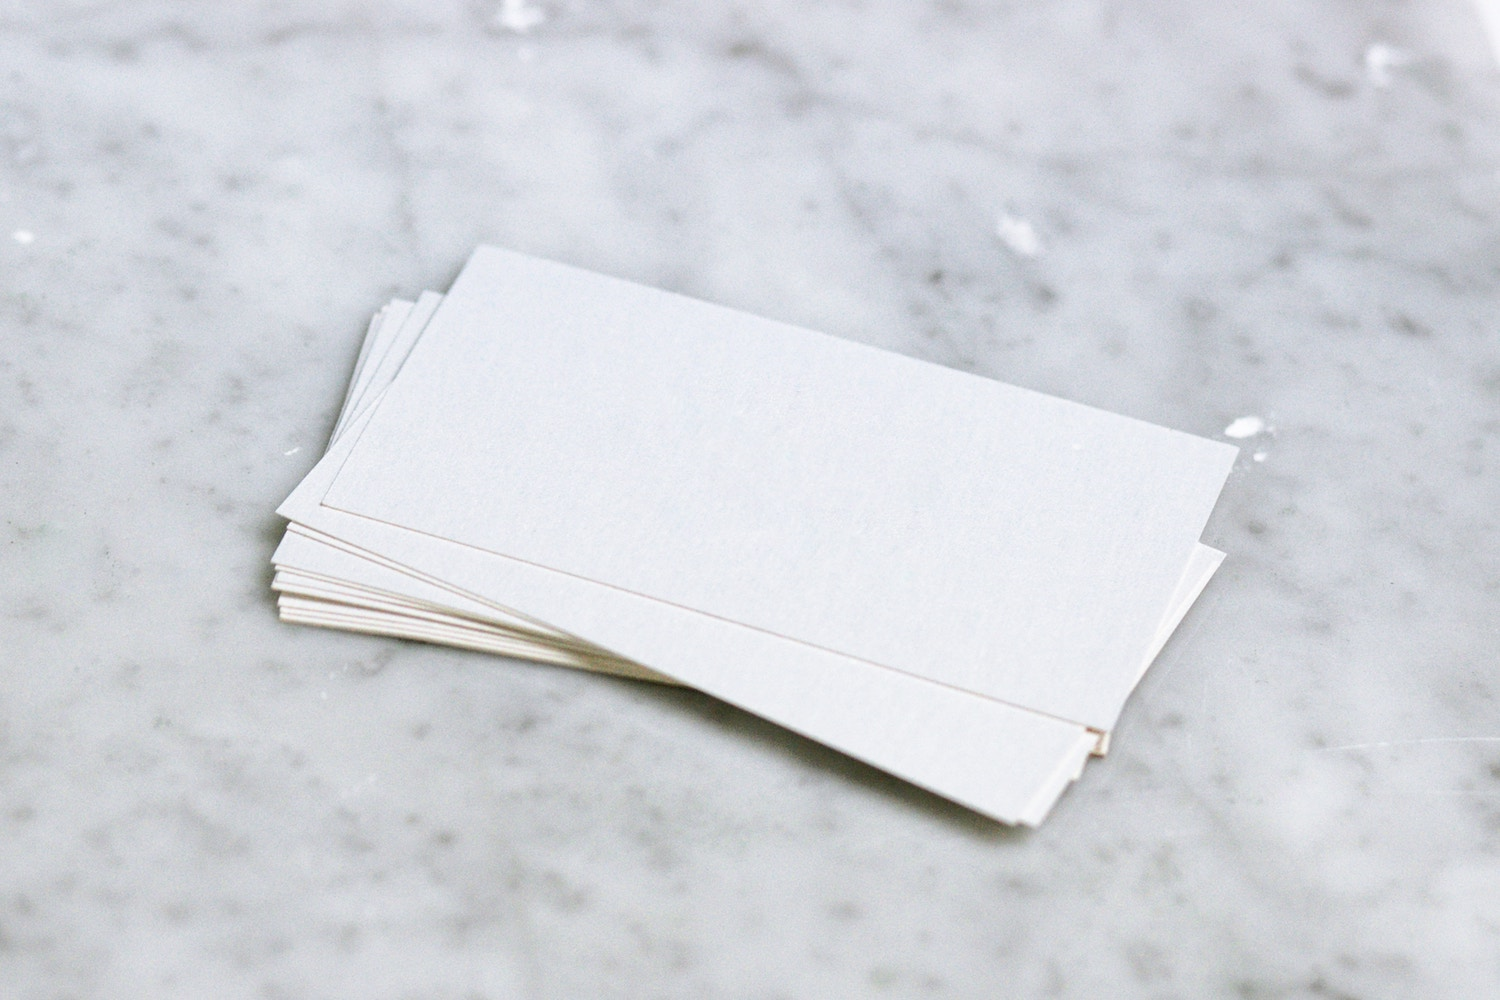 Blank playing cards sitting on a table.